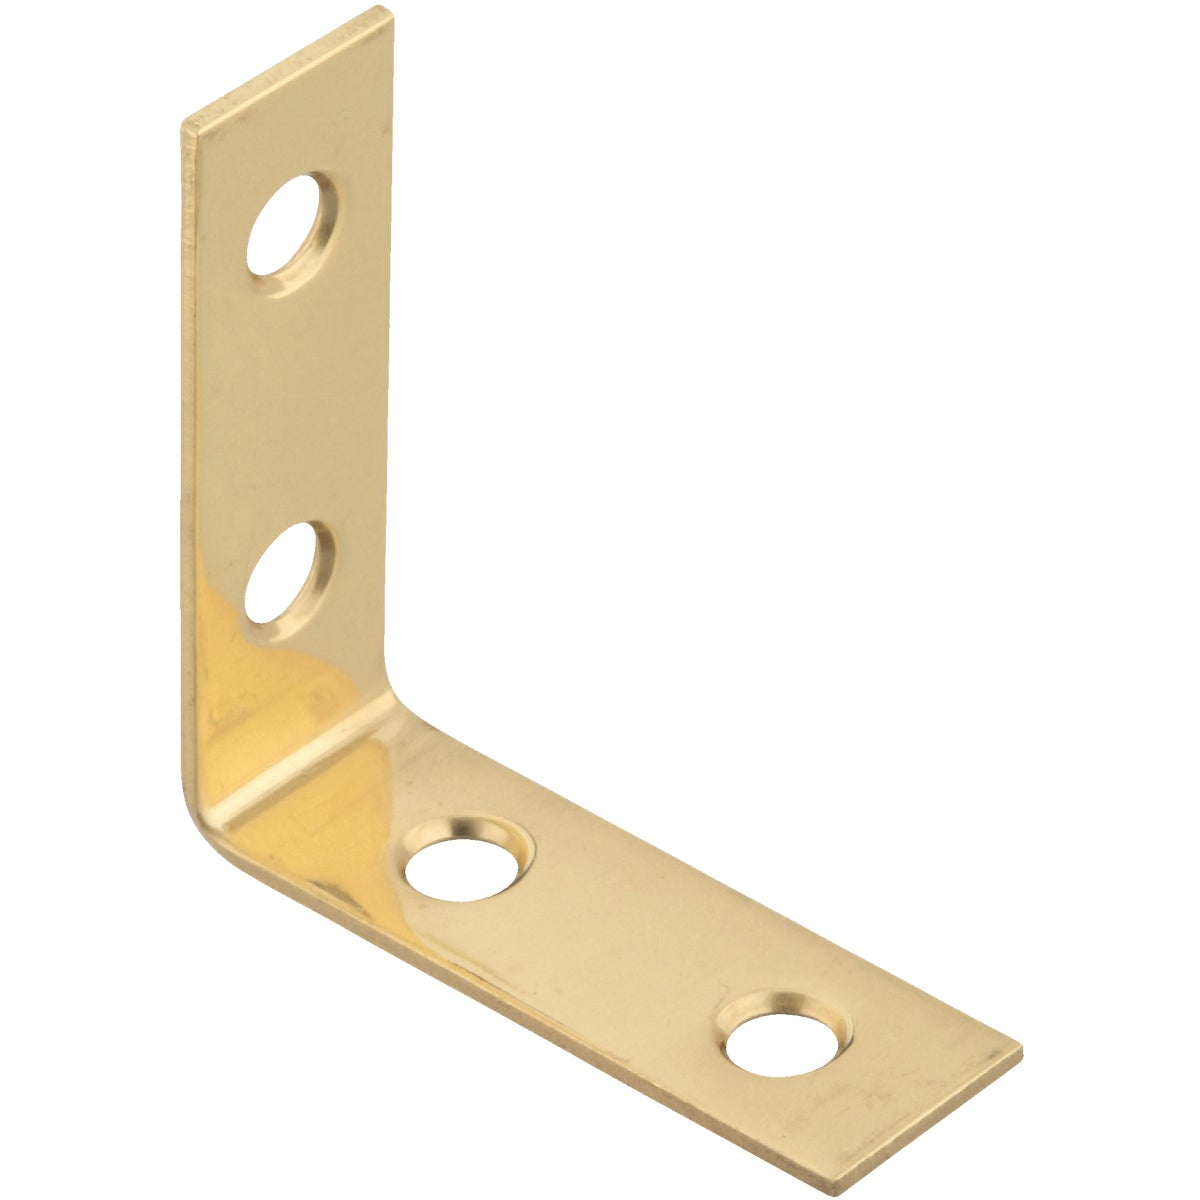 1-1/2X5/8 CORNER BRACE - N213397 by National Mfg Co